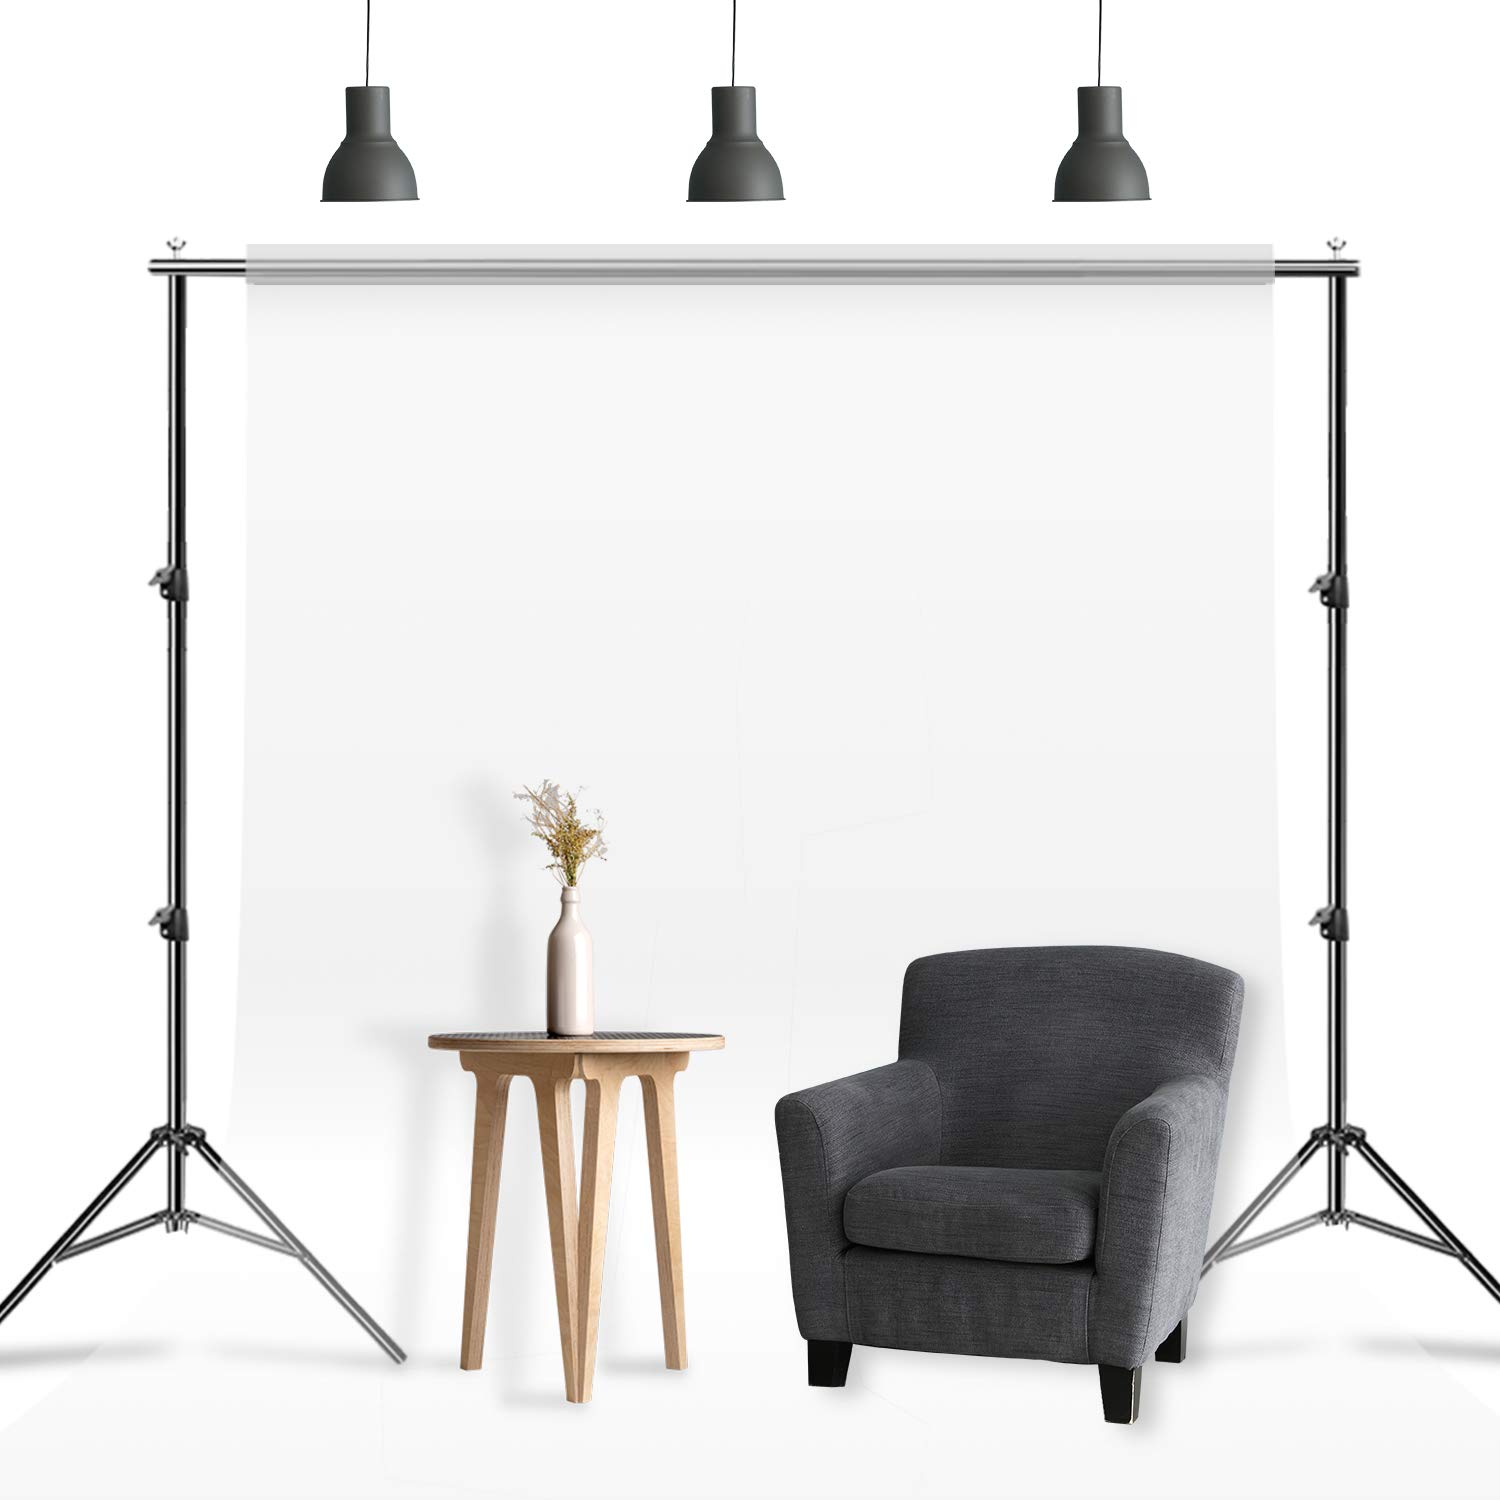 Julius Studio 10 ft Max Wide Adjustable Background Support Stand/Equipment Used in Photo Video Studio for Backdrops with, Muslins with Carry Bag, LNA1106 by Julius Studio (Image #5)